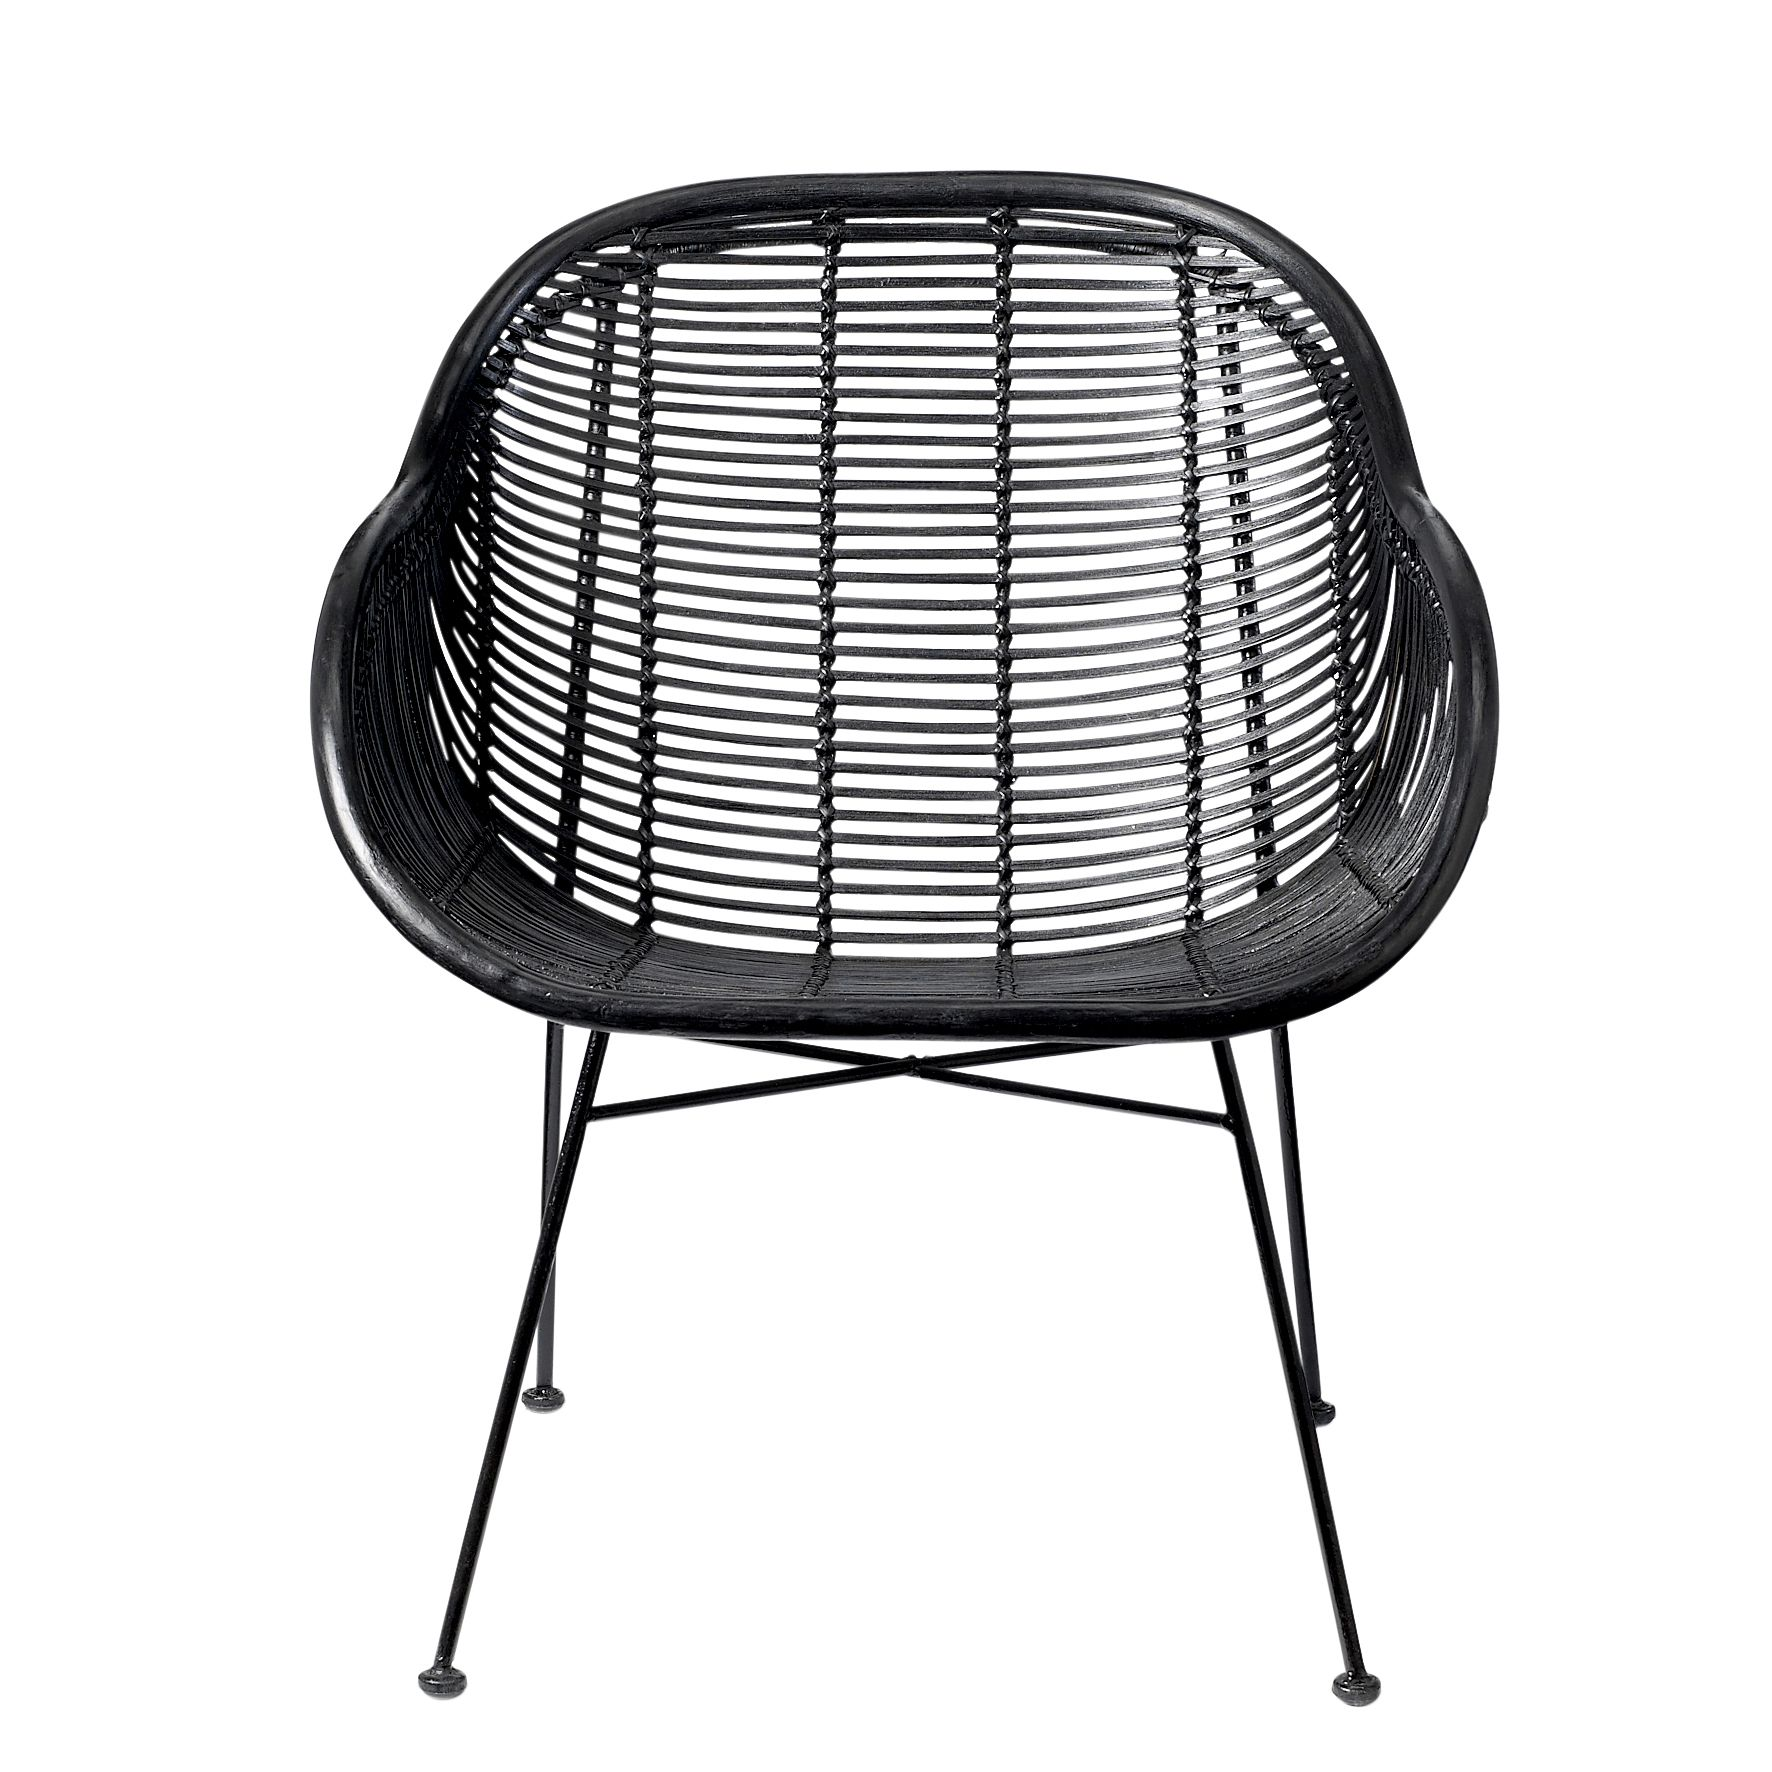 Rundsessel Rattan Bloomingville Stool Bloomingville Furniture Pinterest